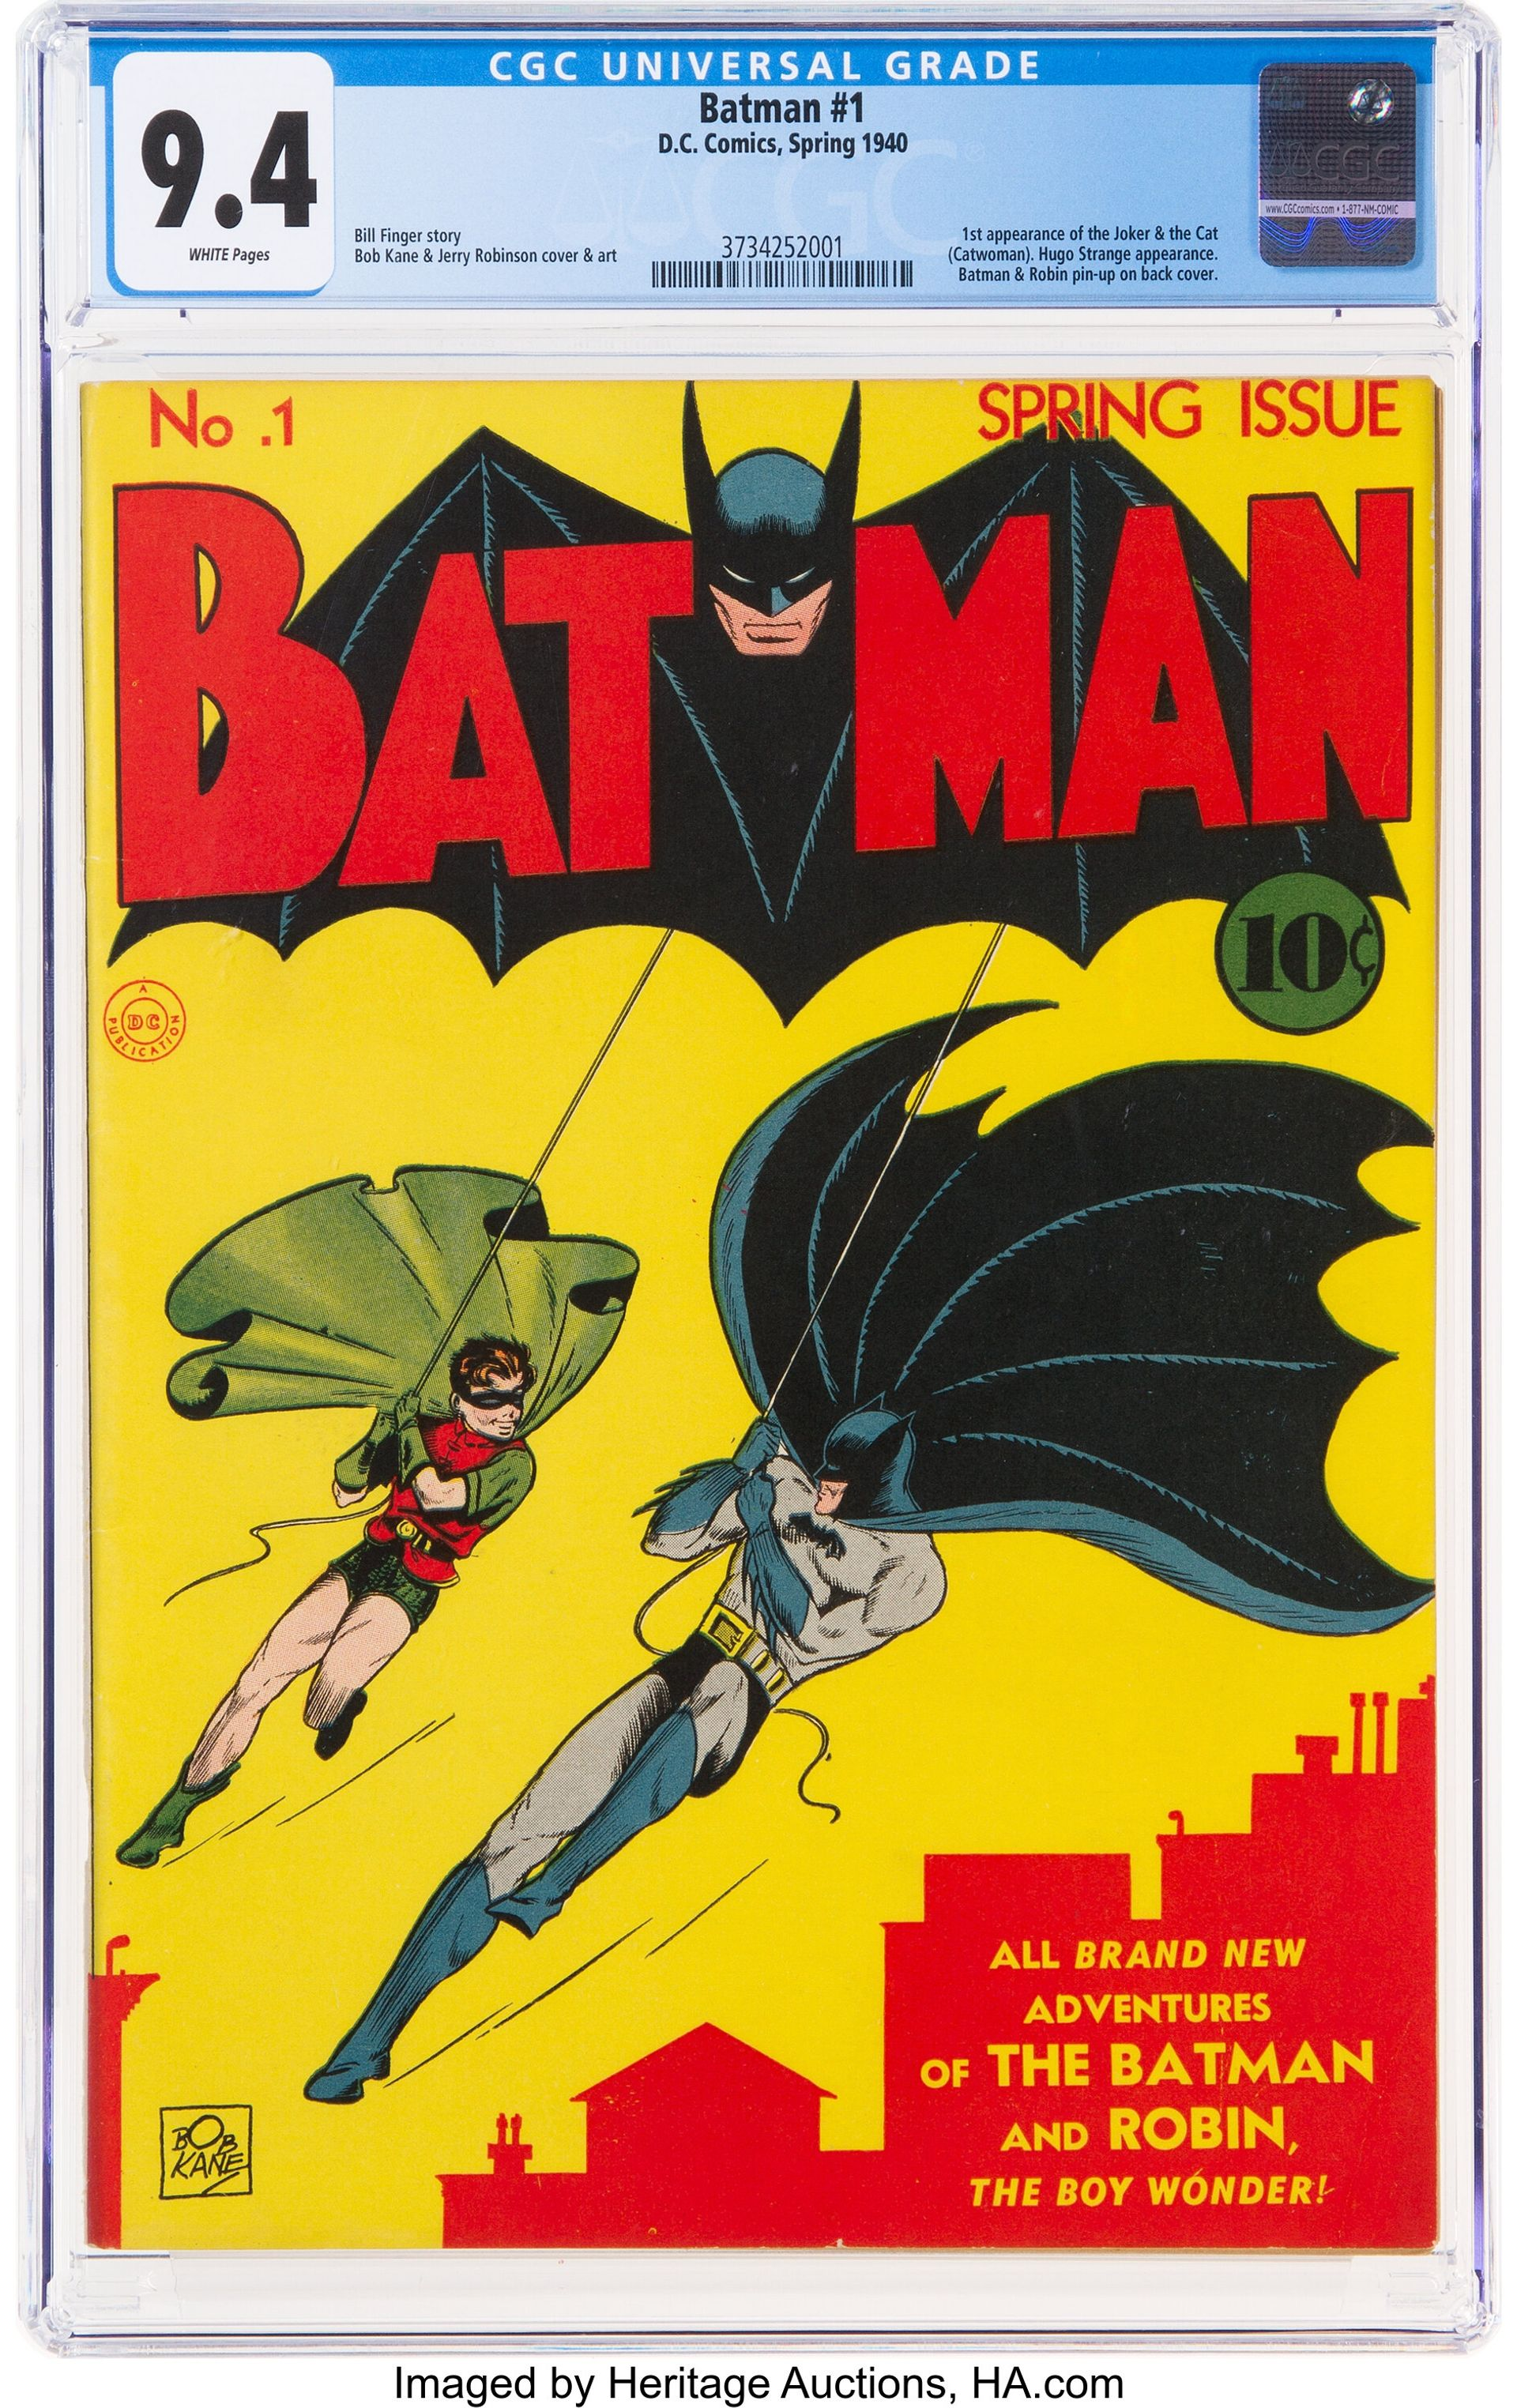 This copy of Batman #1 (1940), written by Bill Finger and drawn by Bob Kane, with art assistance from Jerry Robinson and Sheldon Moldoff, sold for $2.22m at Heritage Auctions